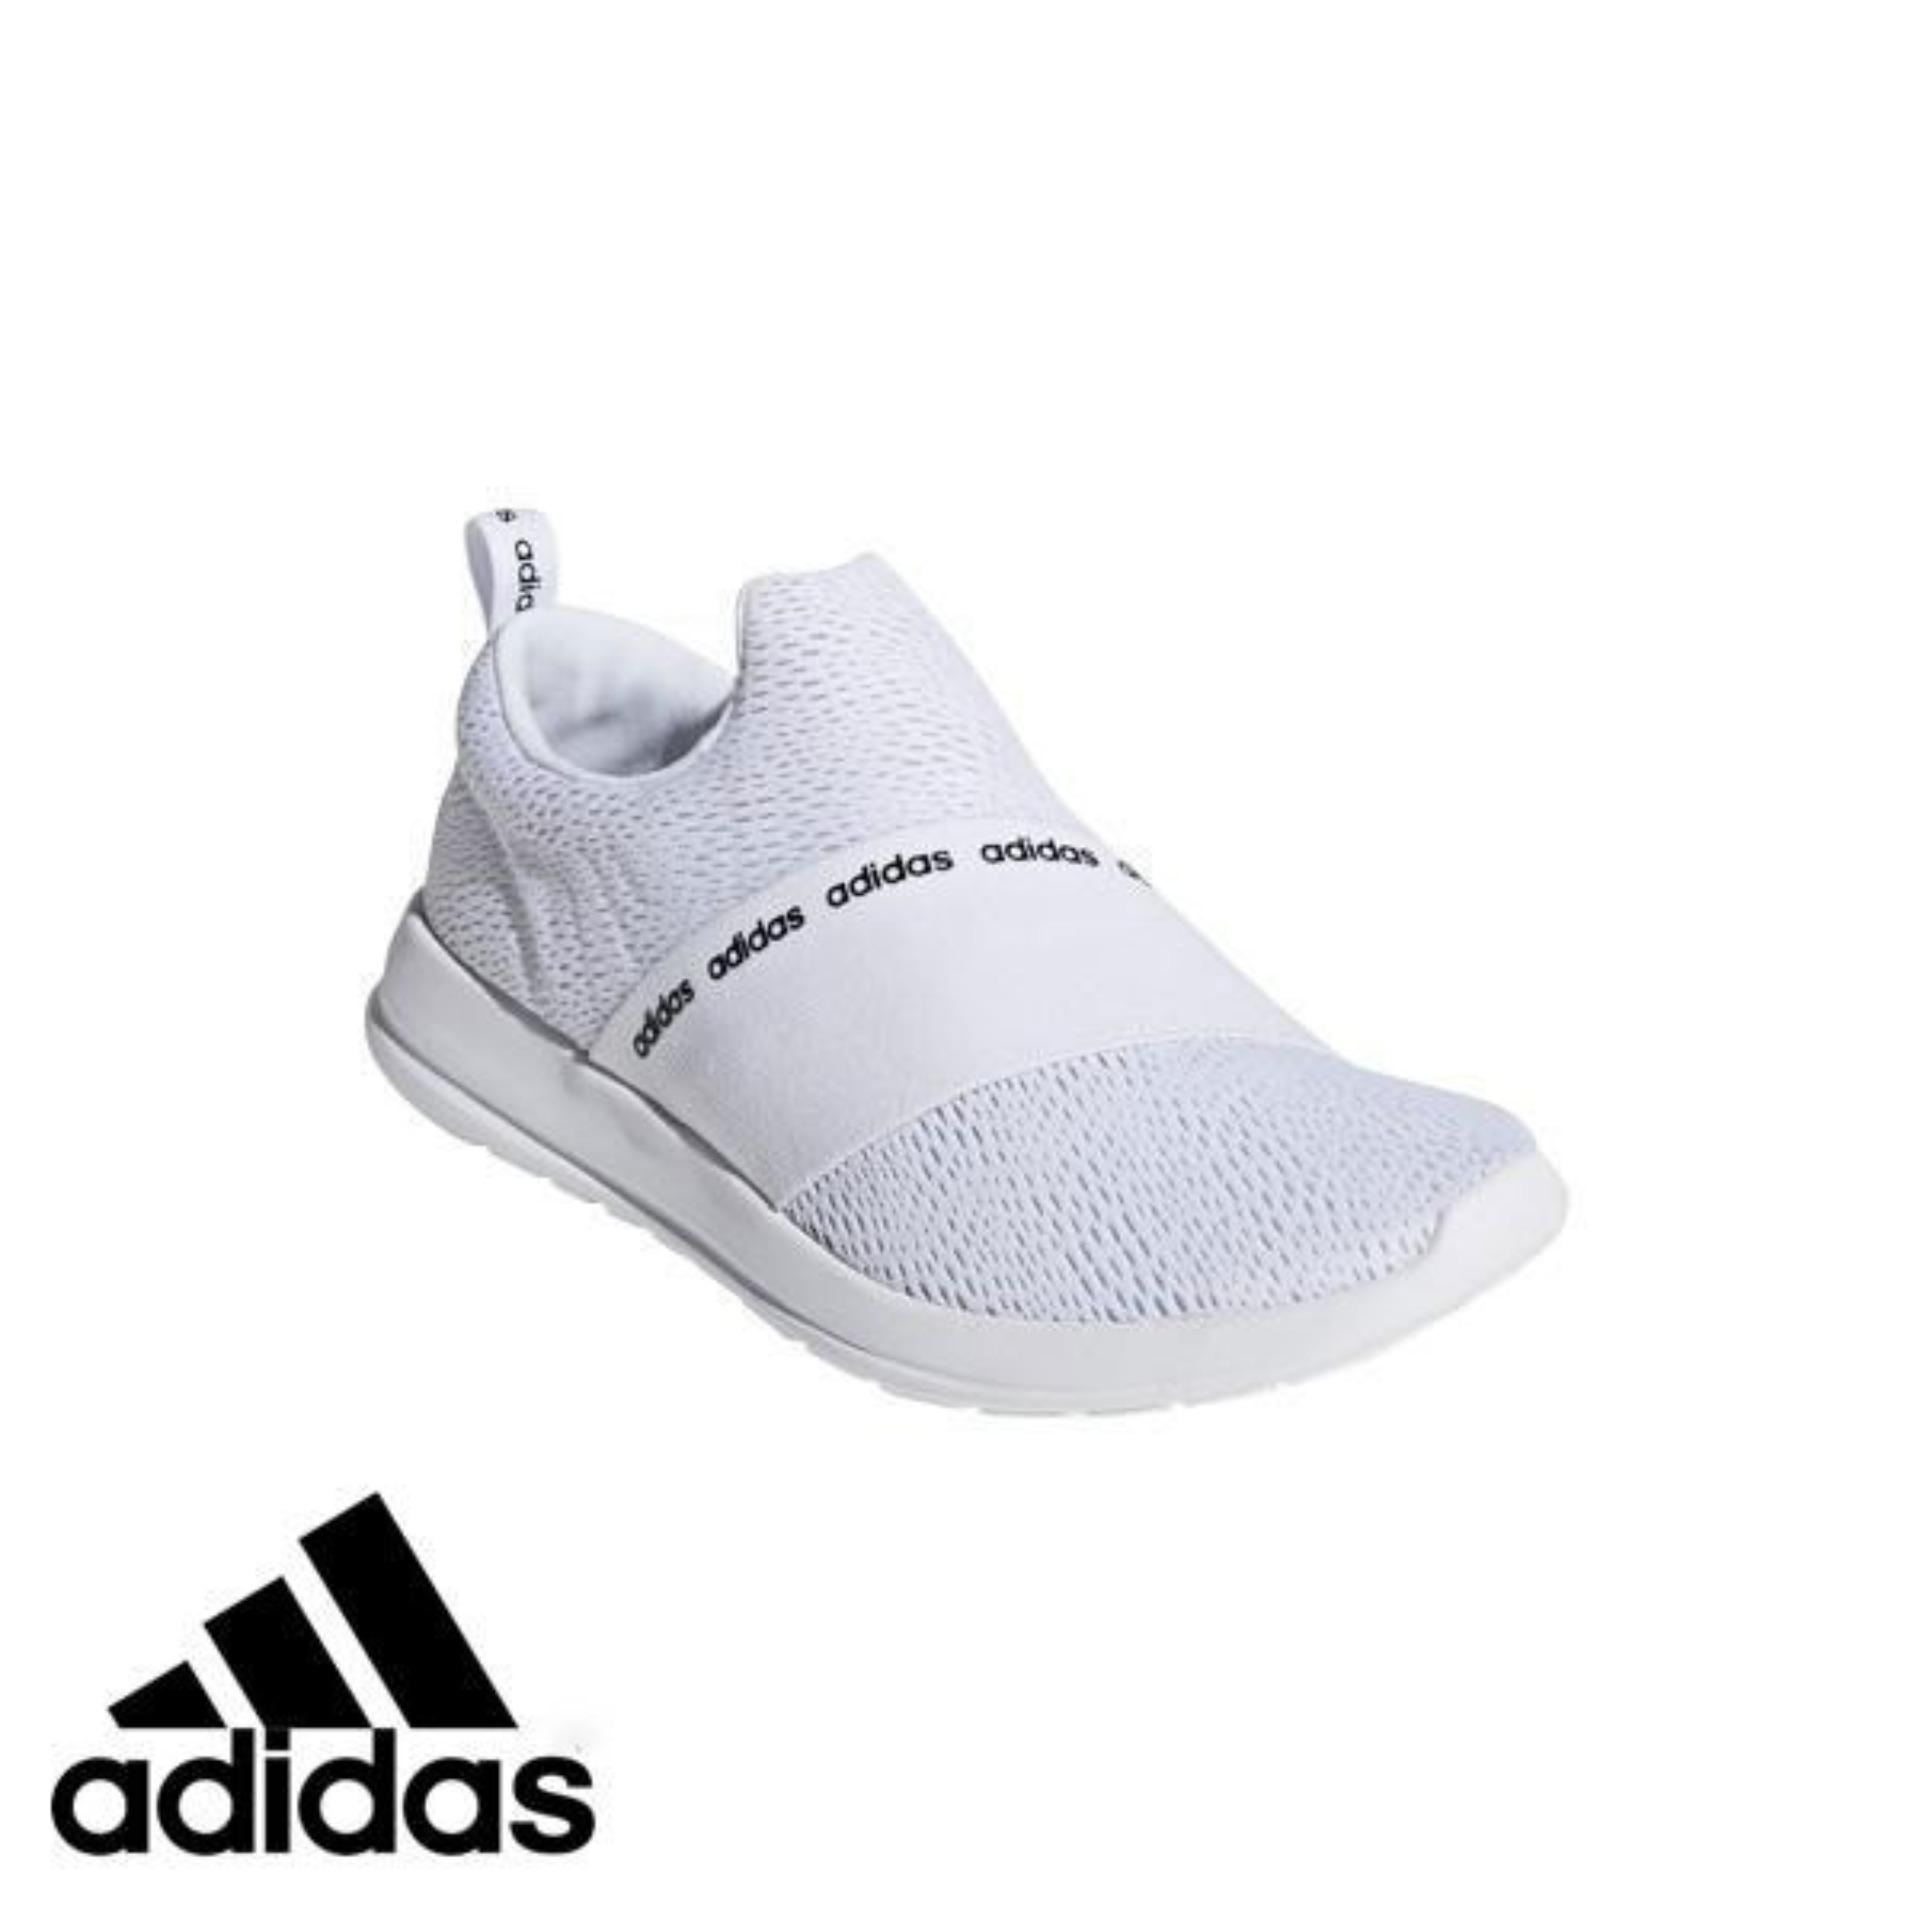 35d5fa946c1 Adidas Sports Shoes Philippines - Adidas Sports Clothing for sale ...